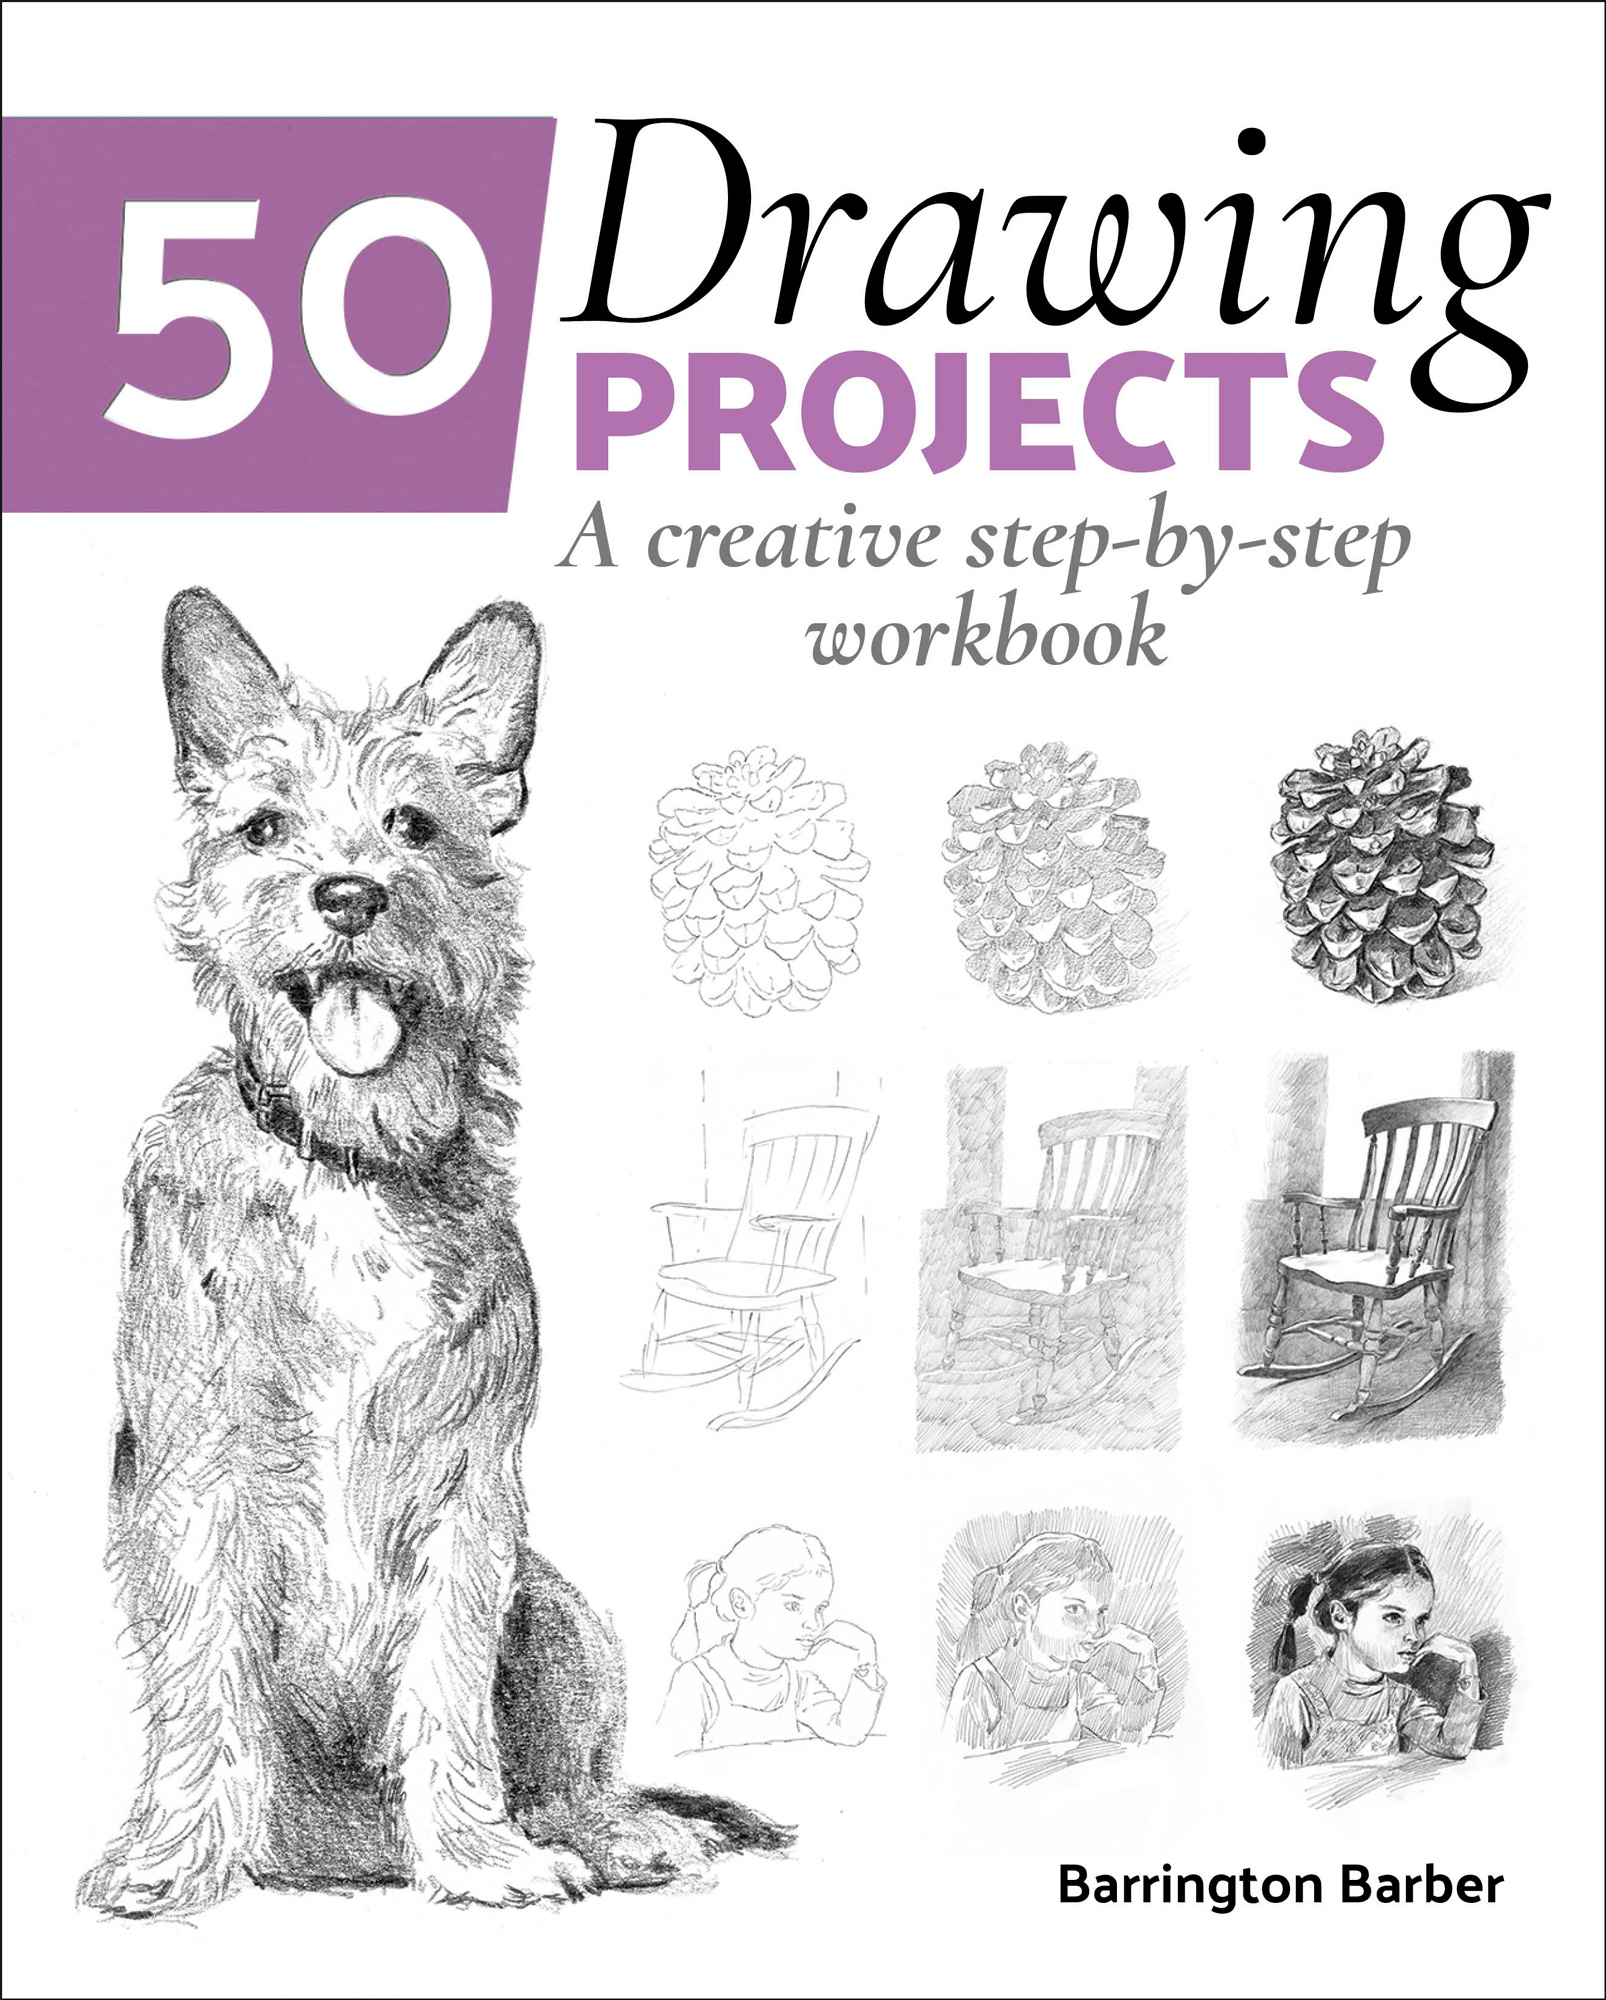 50 Drawing Projects A creative step-by-step workbook